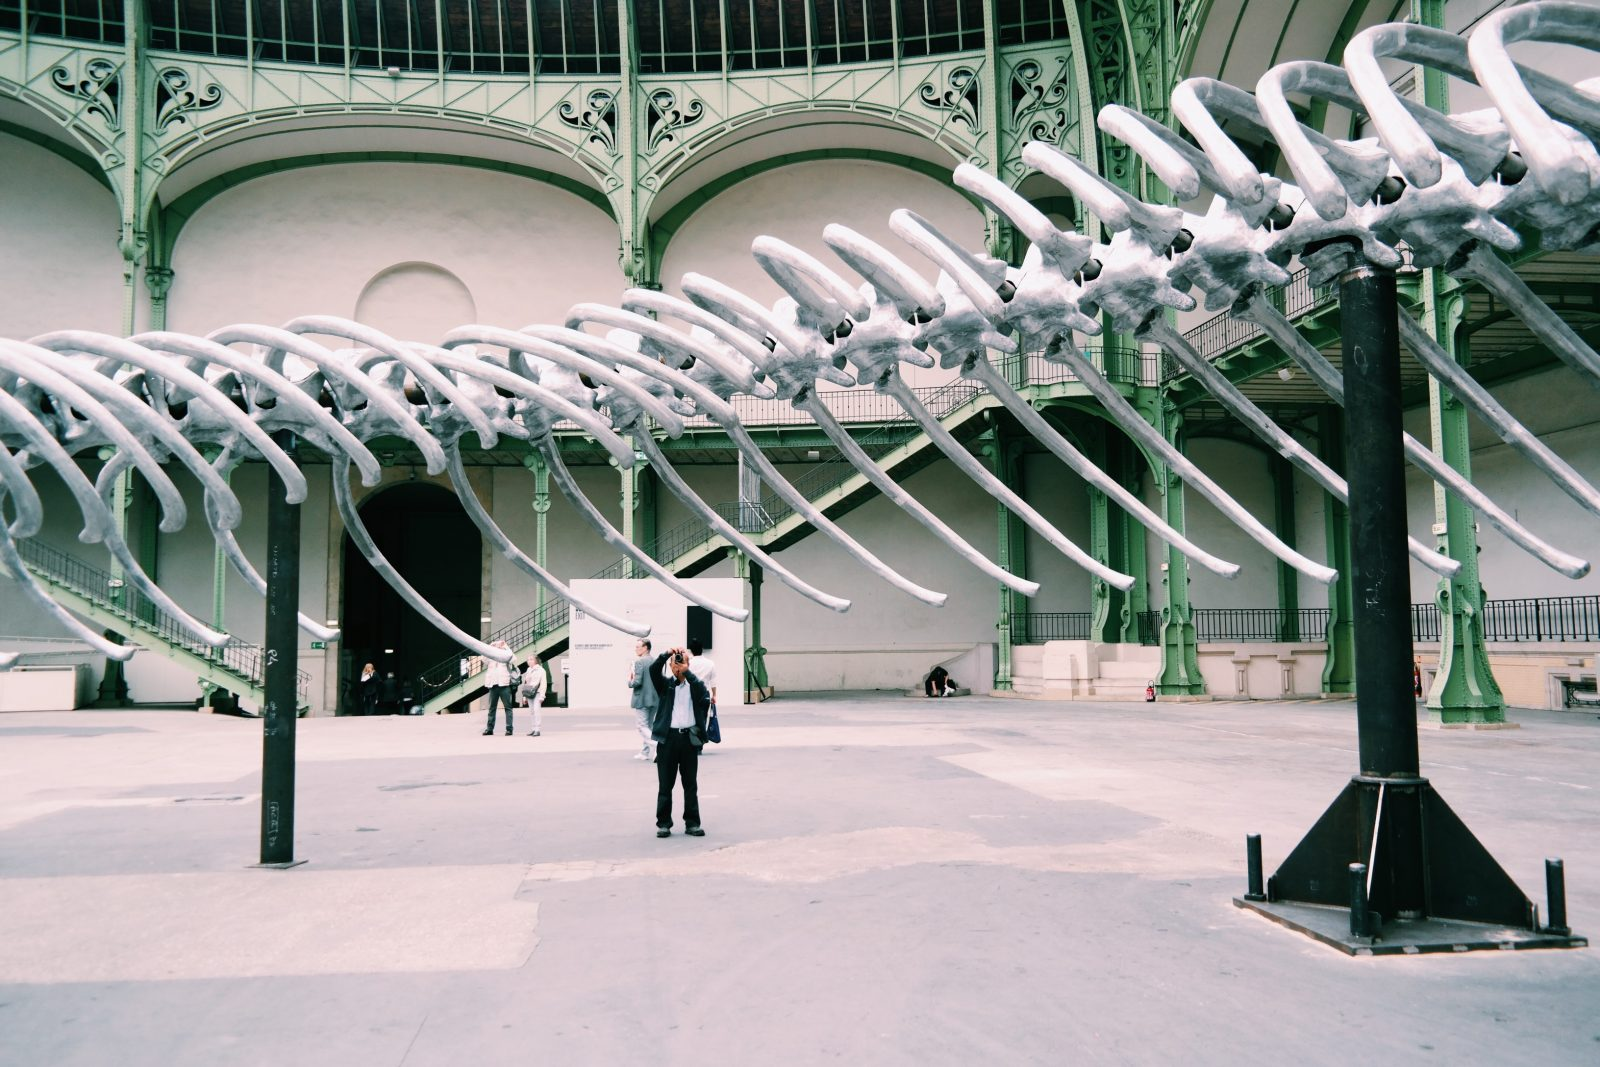 Monumenta-2016-Empires-Huang-Yong-Ping-Grand-Palais-Paris-Nef-photographe-du-squelette-serpent-Kamel-Mennour-photo-usofparis-blog